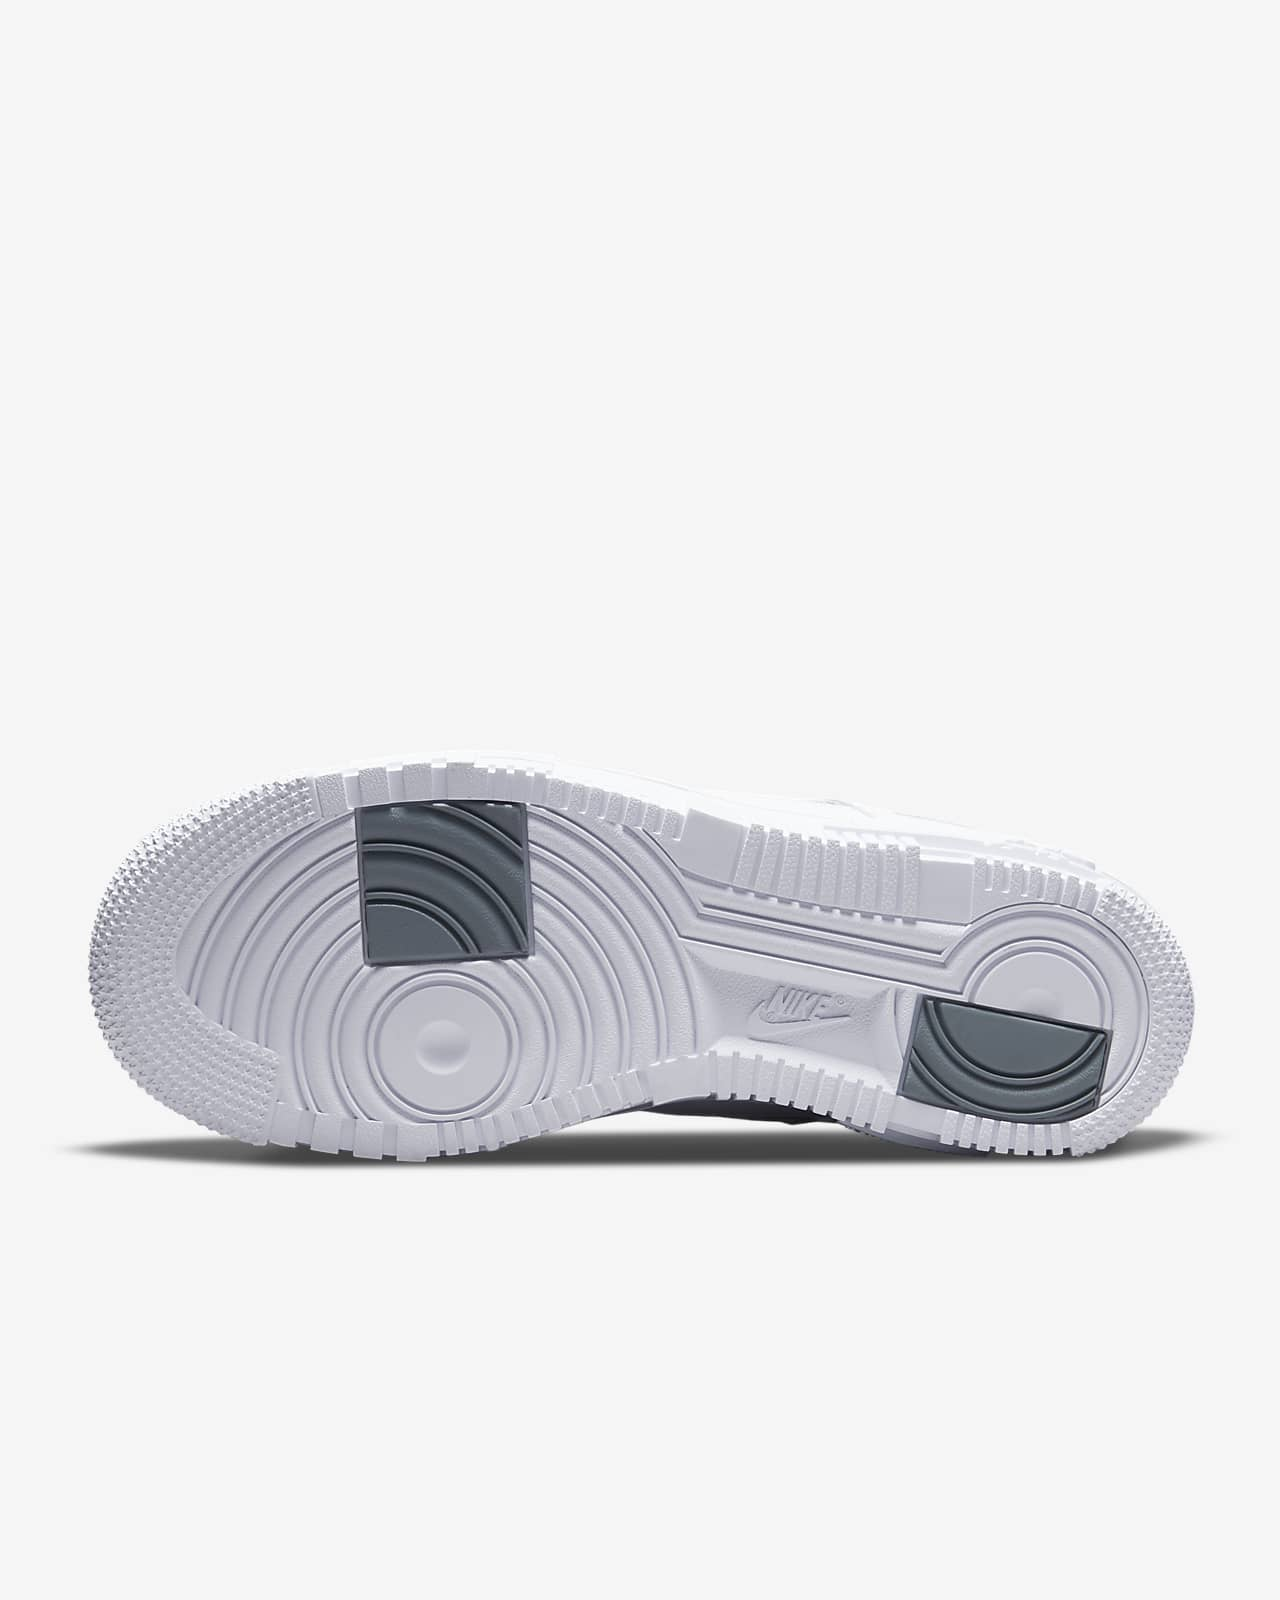 Chaussures Nike Air Force 1 Pixel SE pour Femme. Nike FR